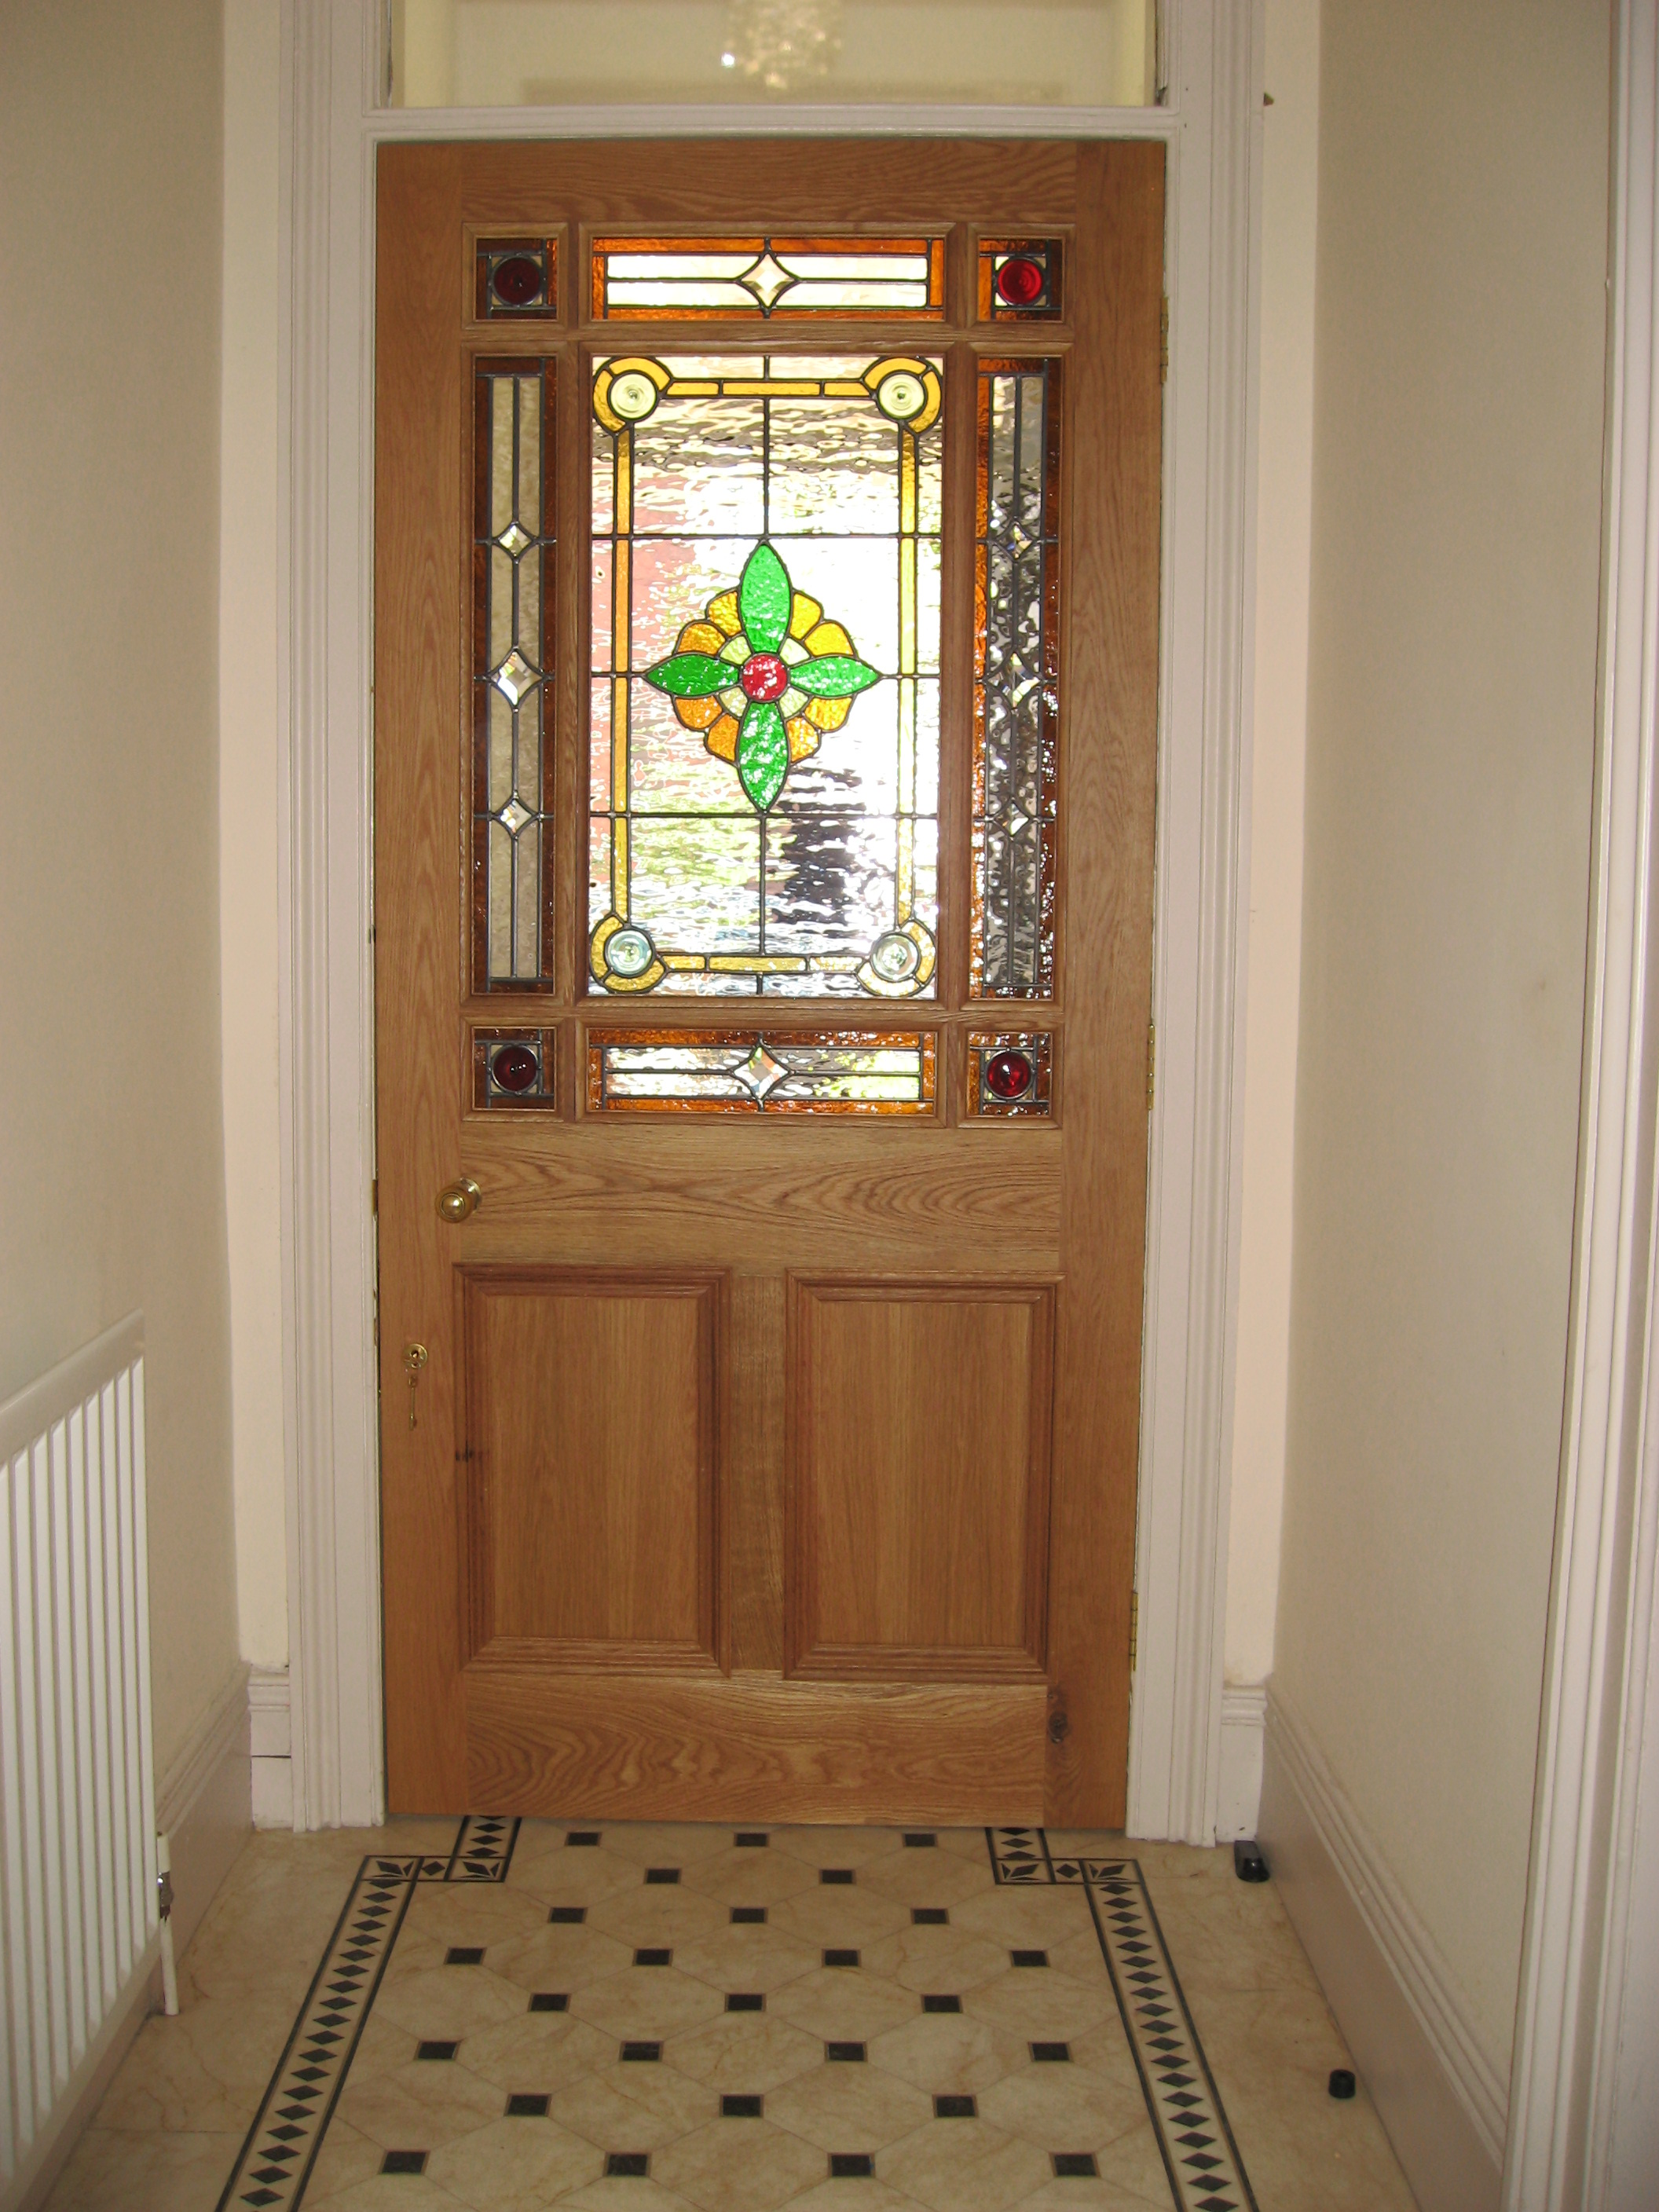 Oak 9 pane door & Bespoke Reproduction handmade doors